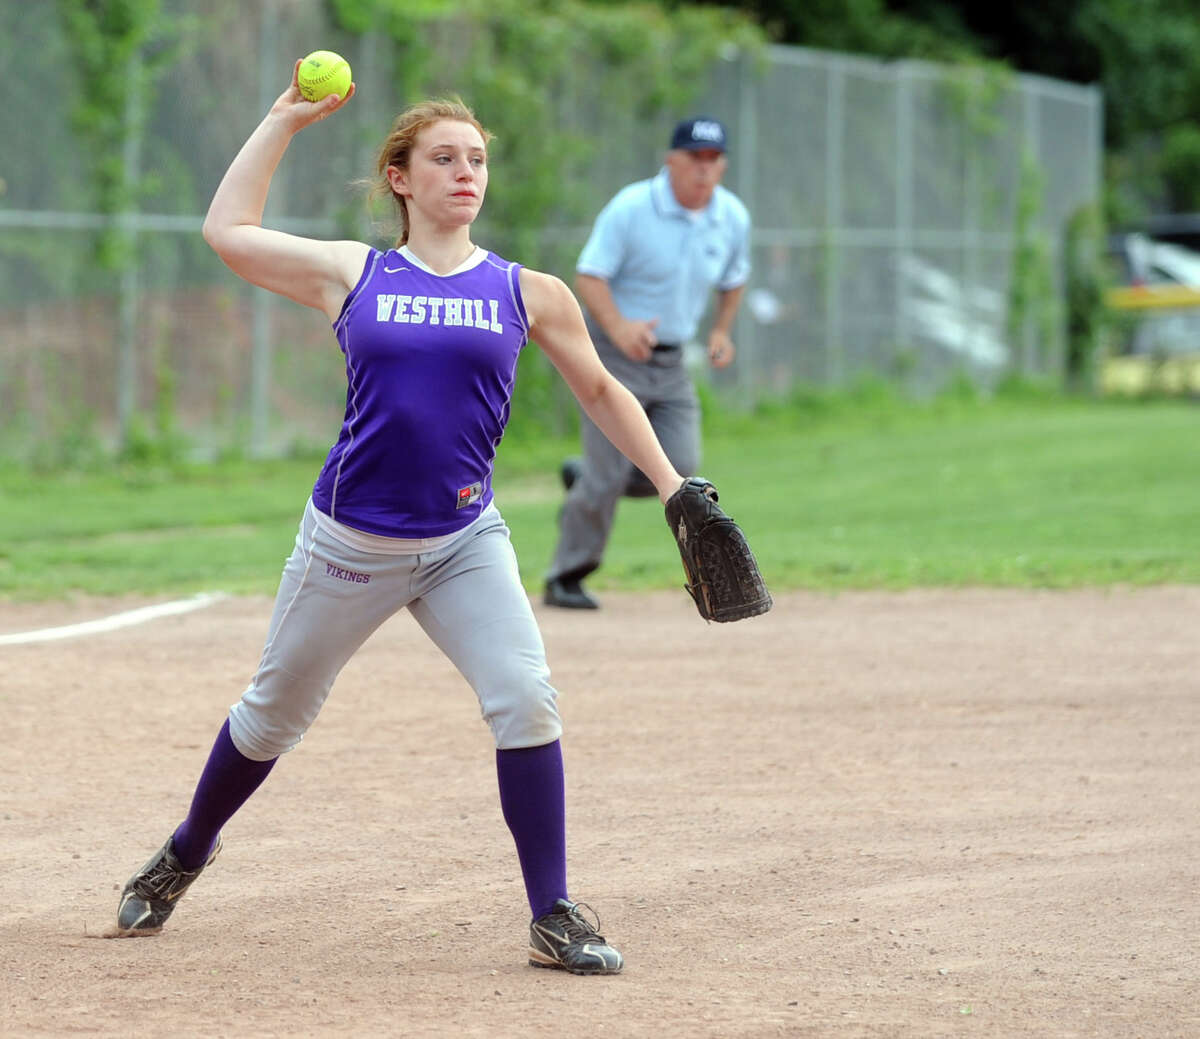 Westhill's Tami Wise makes a play in the infield during Friday's softball game against Mercy in Stamford on June 1, 2012.